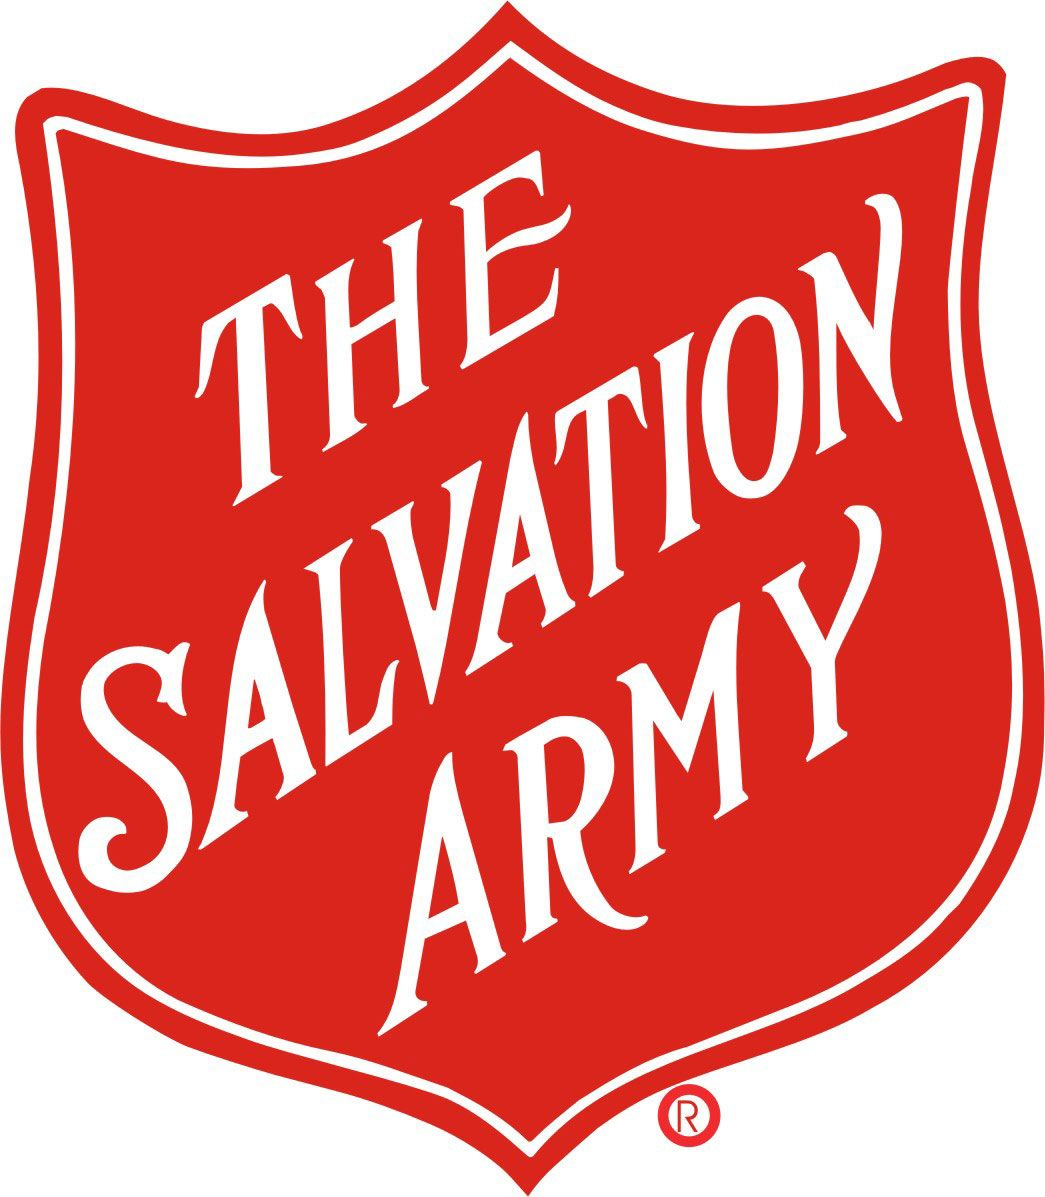 The salvation army logo going to a logo pinterest army the salvation army logo biocorpaavc Choice Image